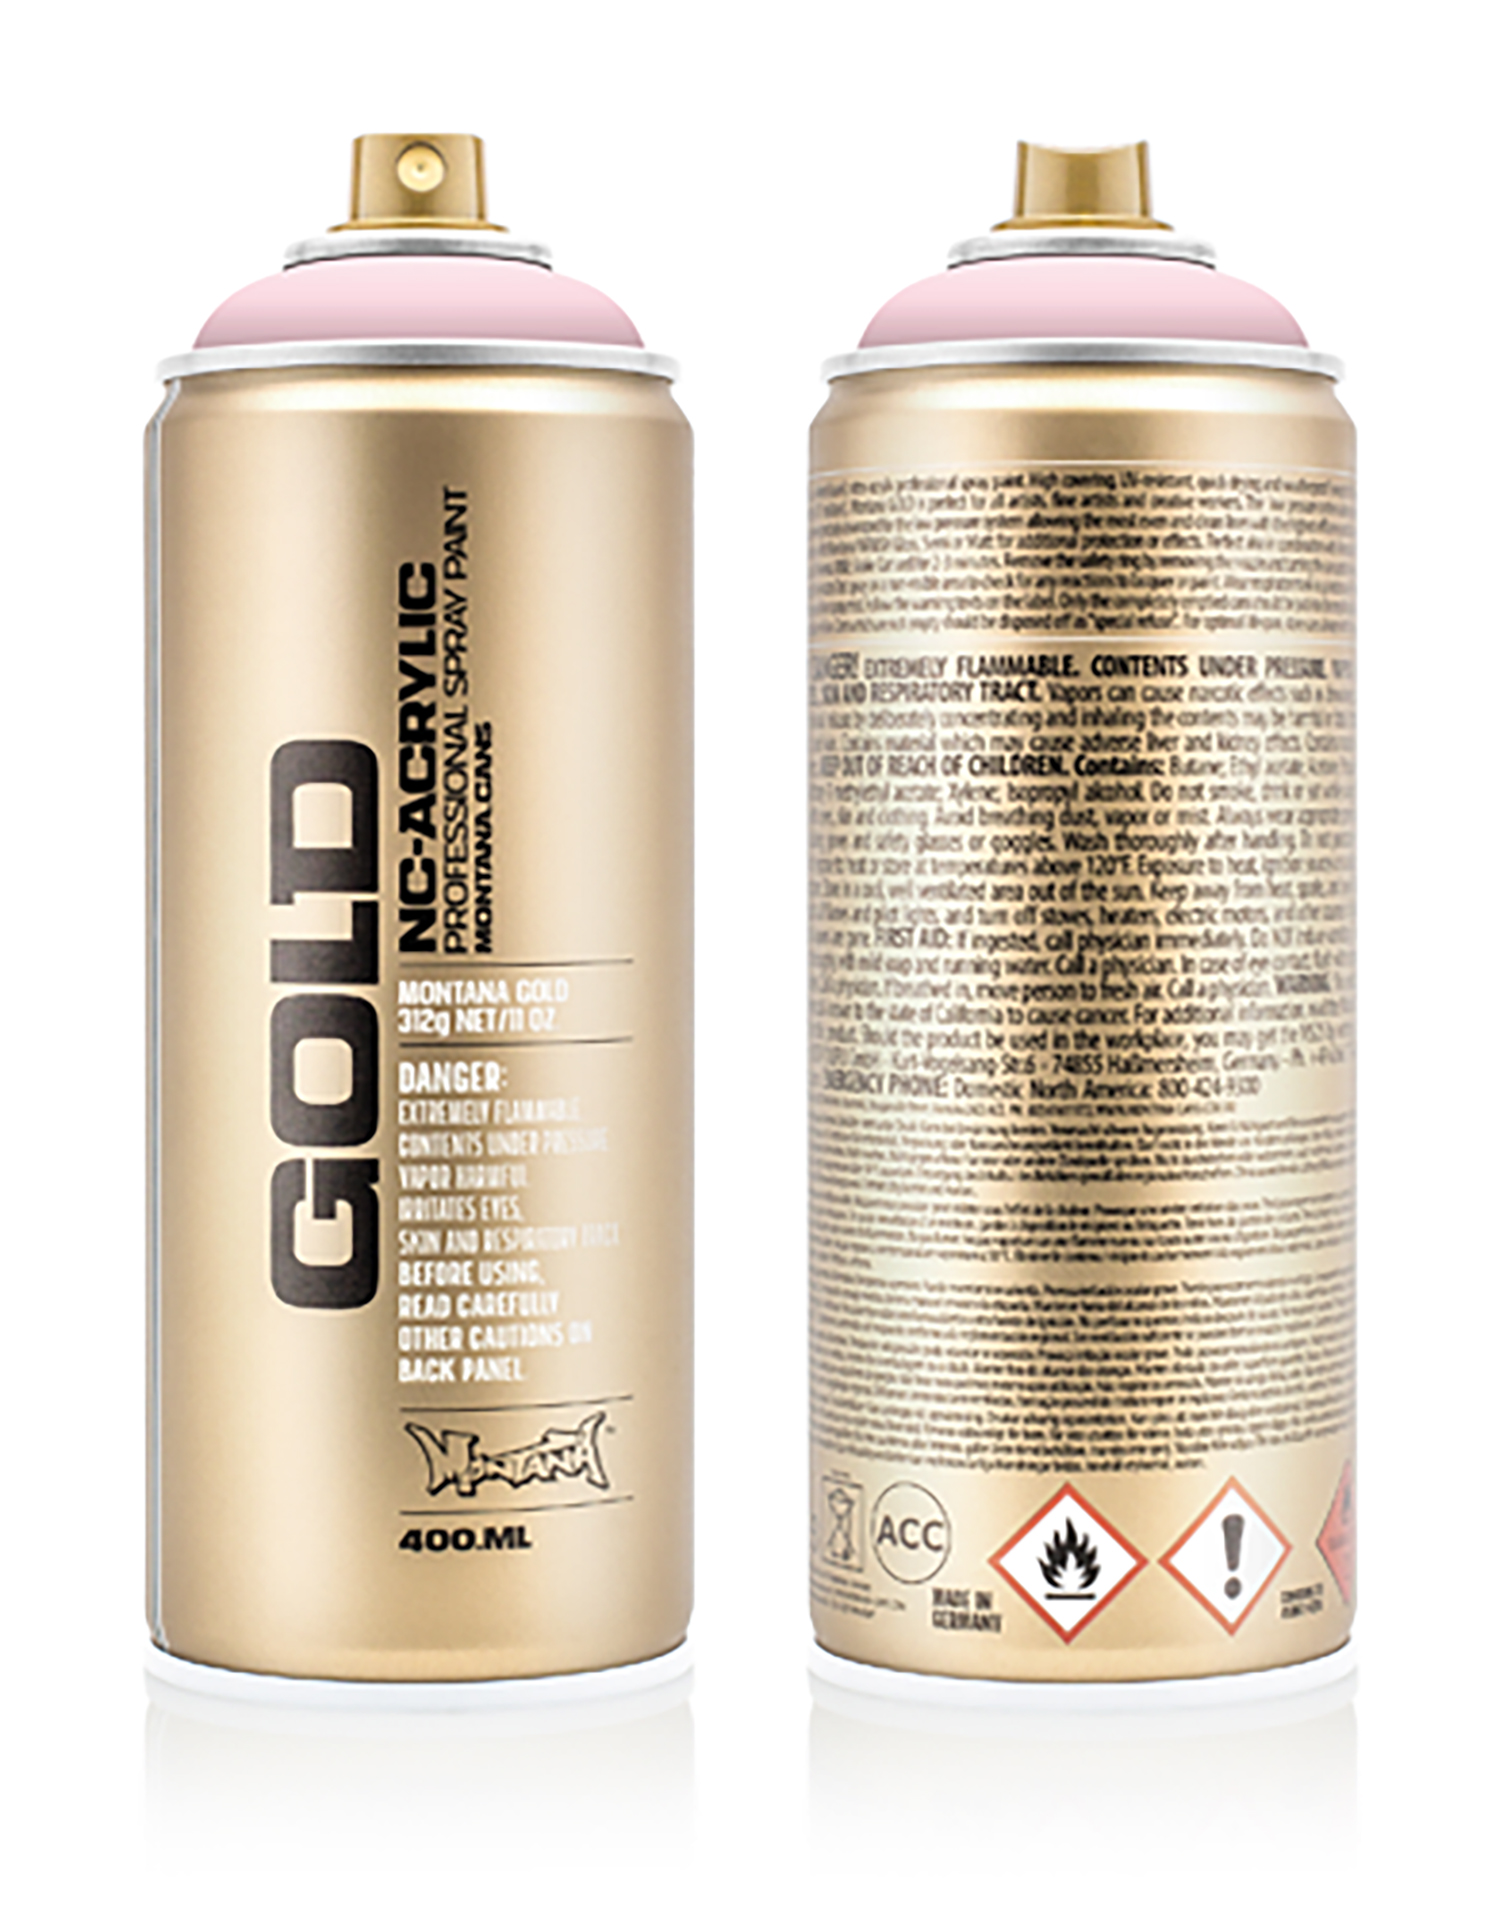 MONTANA-GOLD-SPRAY-400ML-G-3100